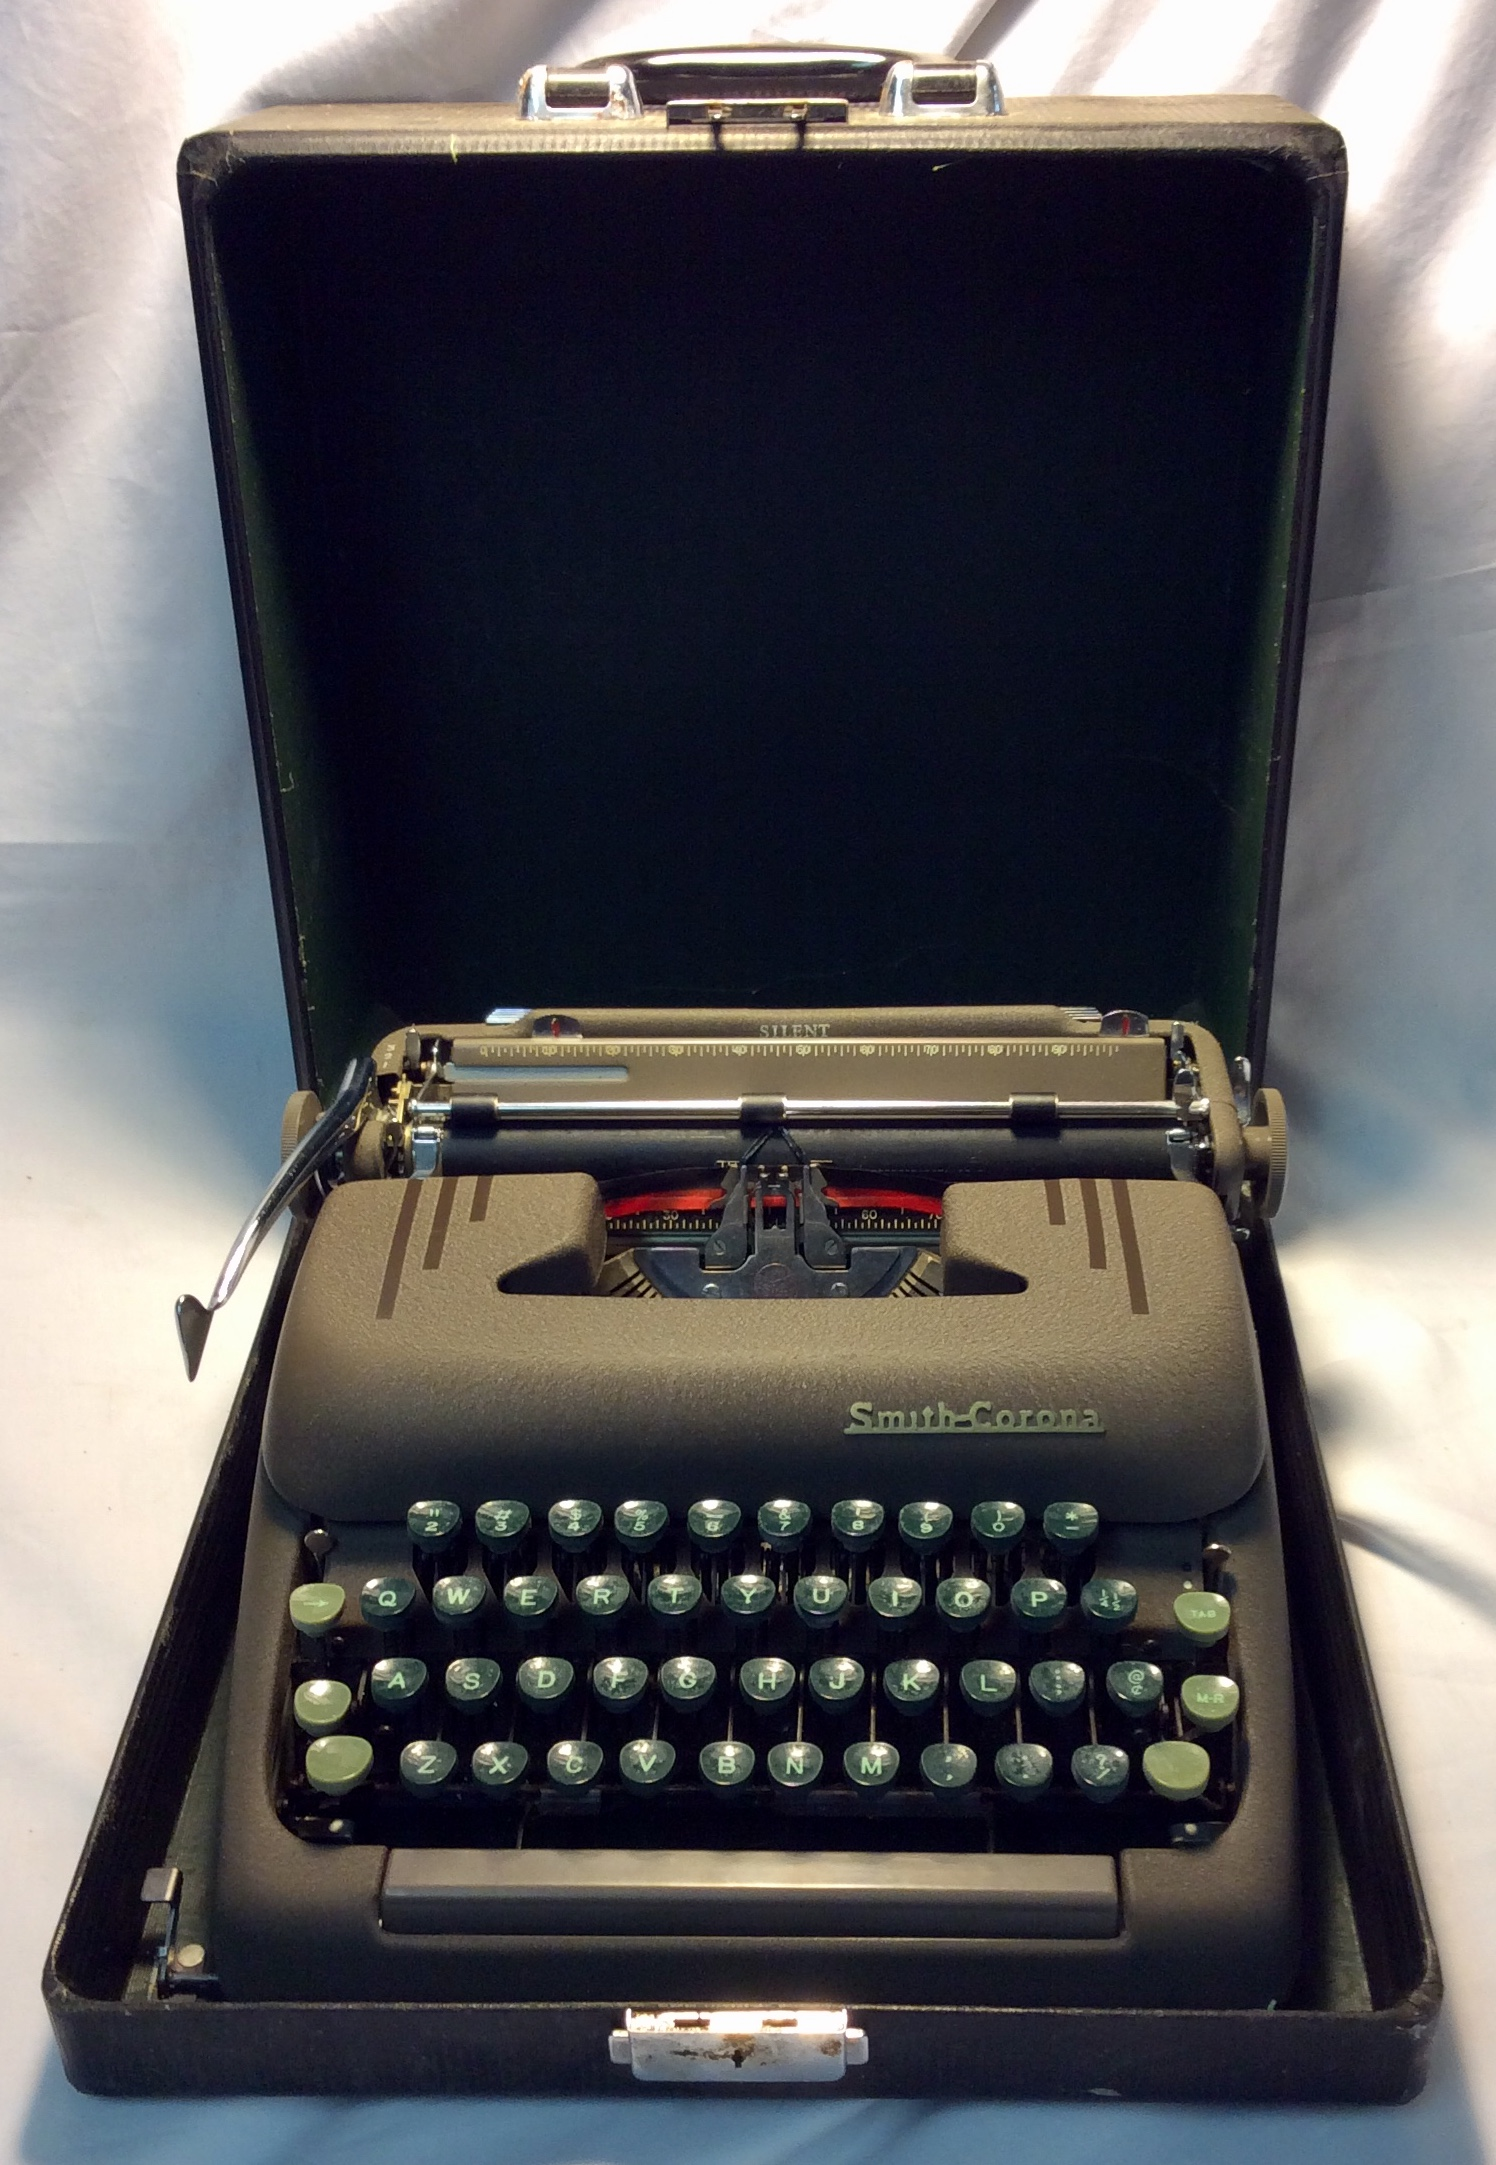 Smith-Corona beige typewriter